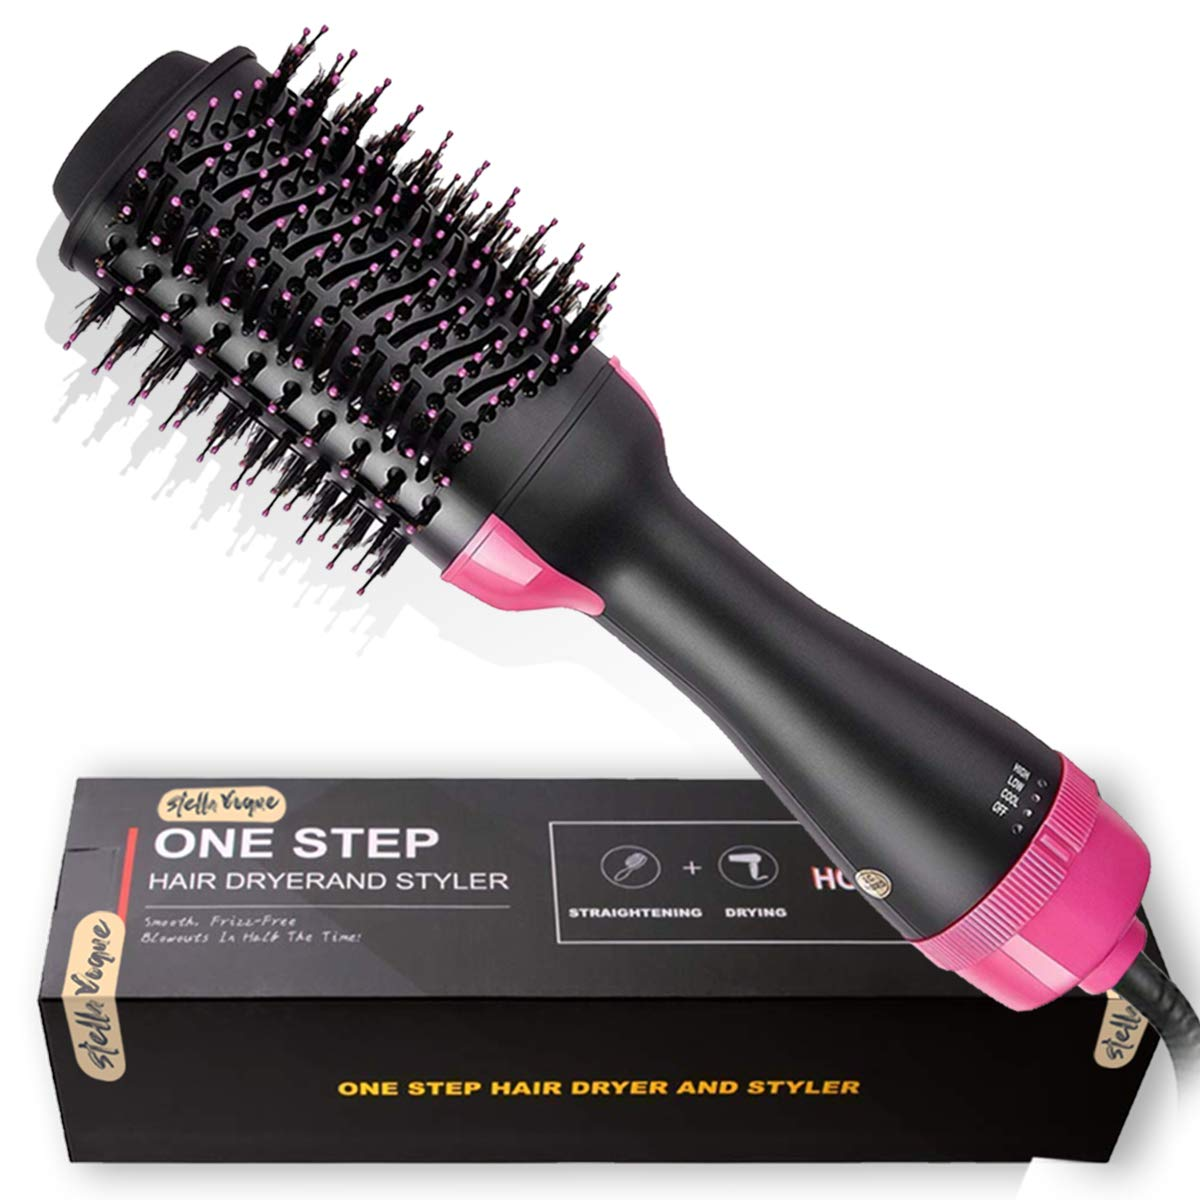 Hair Dryer Brush,2-in-1 One Step Hair Dryer Volumizer Negative Ion Straightening Brush Salon Hot Air Paddle Styling Reduce Frizz and Static Design